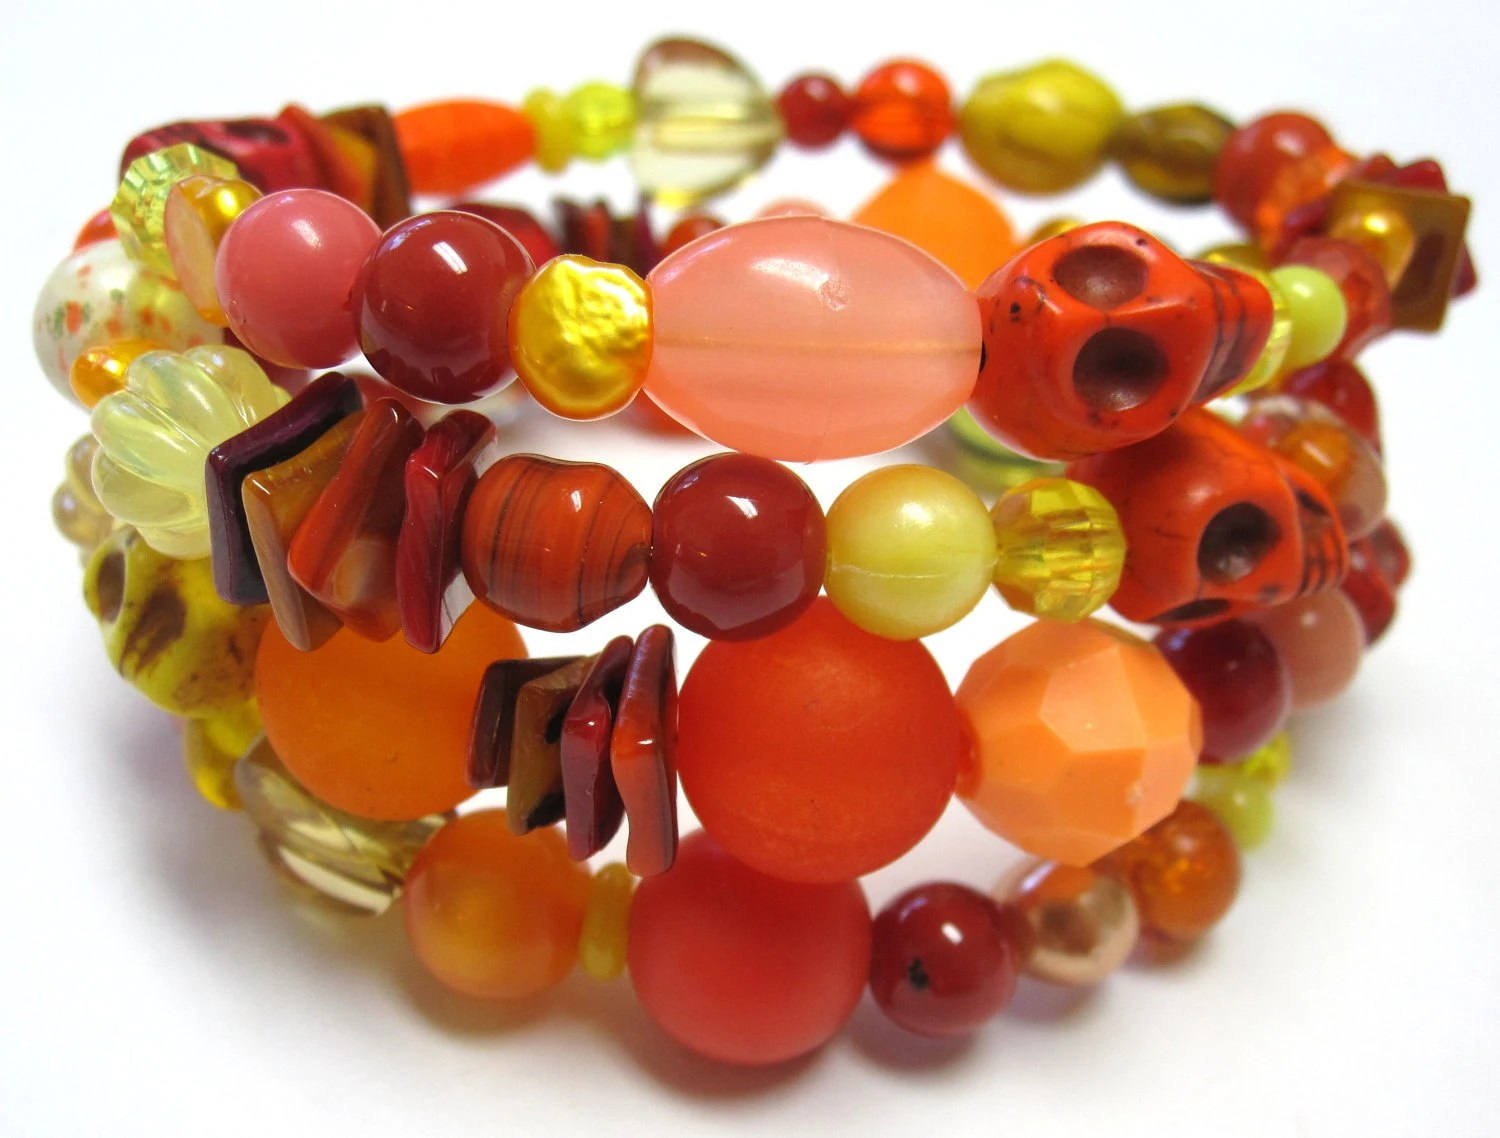 Tequila Sunrise - Day of the Dead Sugar Skull Cuff Bracelet